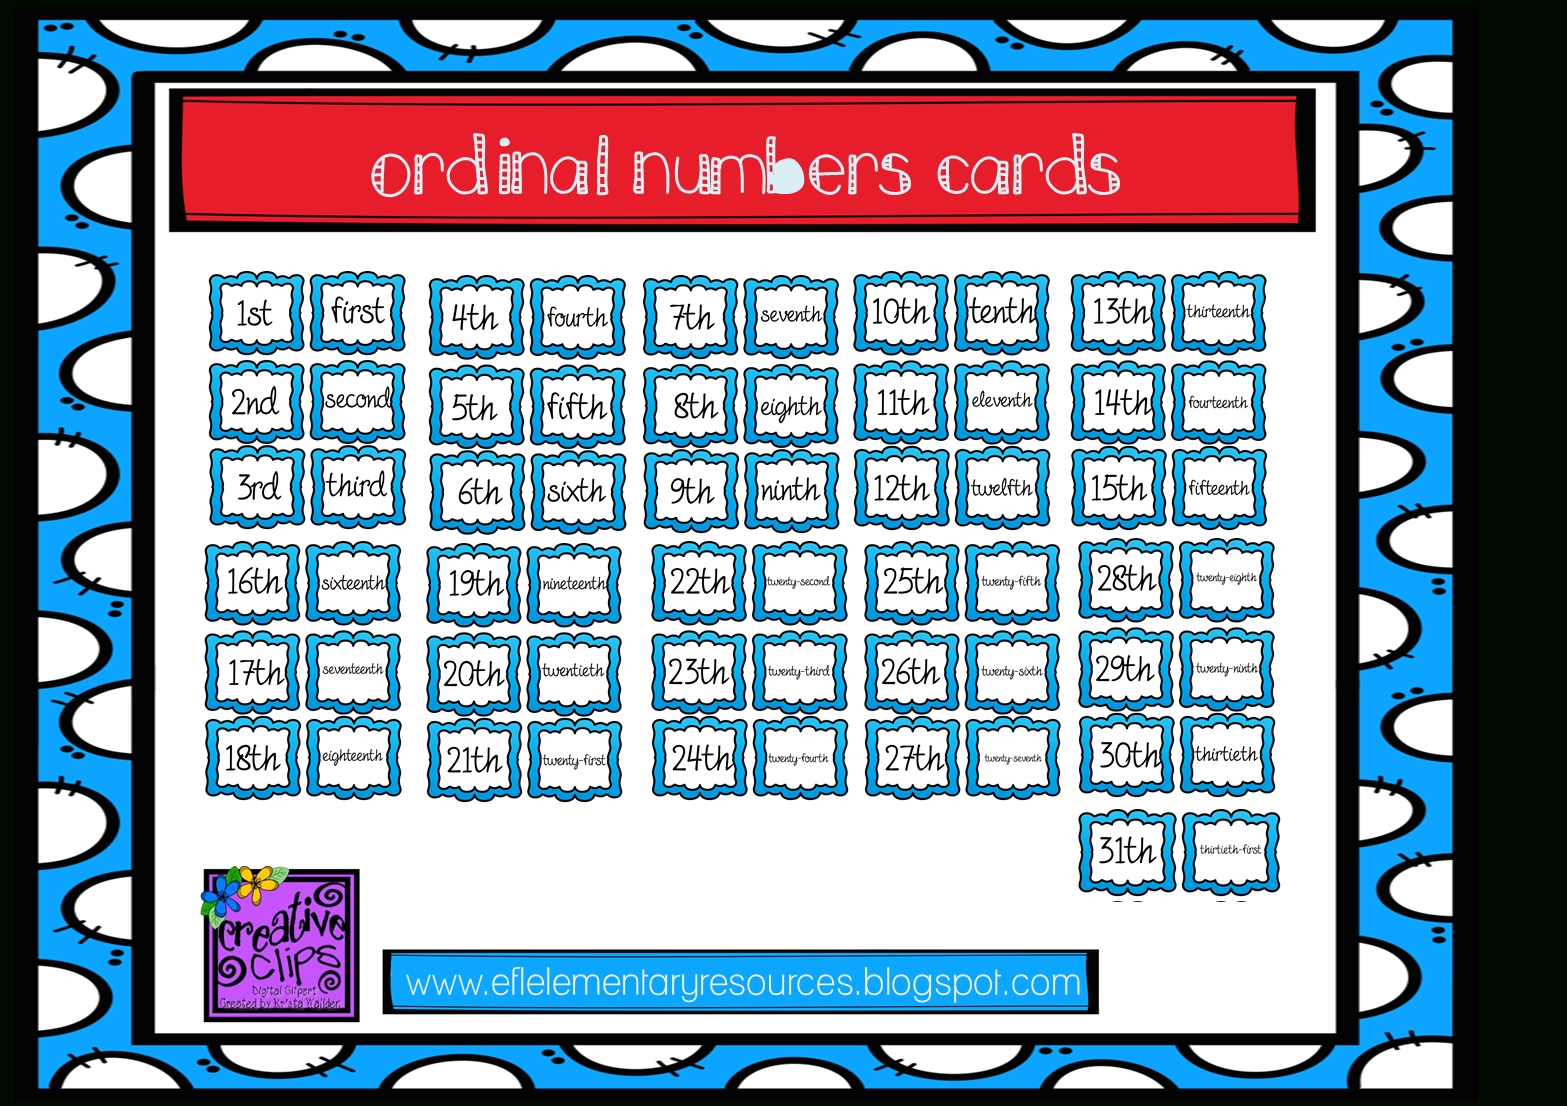 Efl Elementary Teachers: Calendar: Days And Months regarding Numbers Days Of The Month